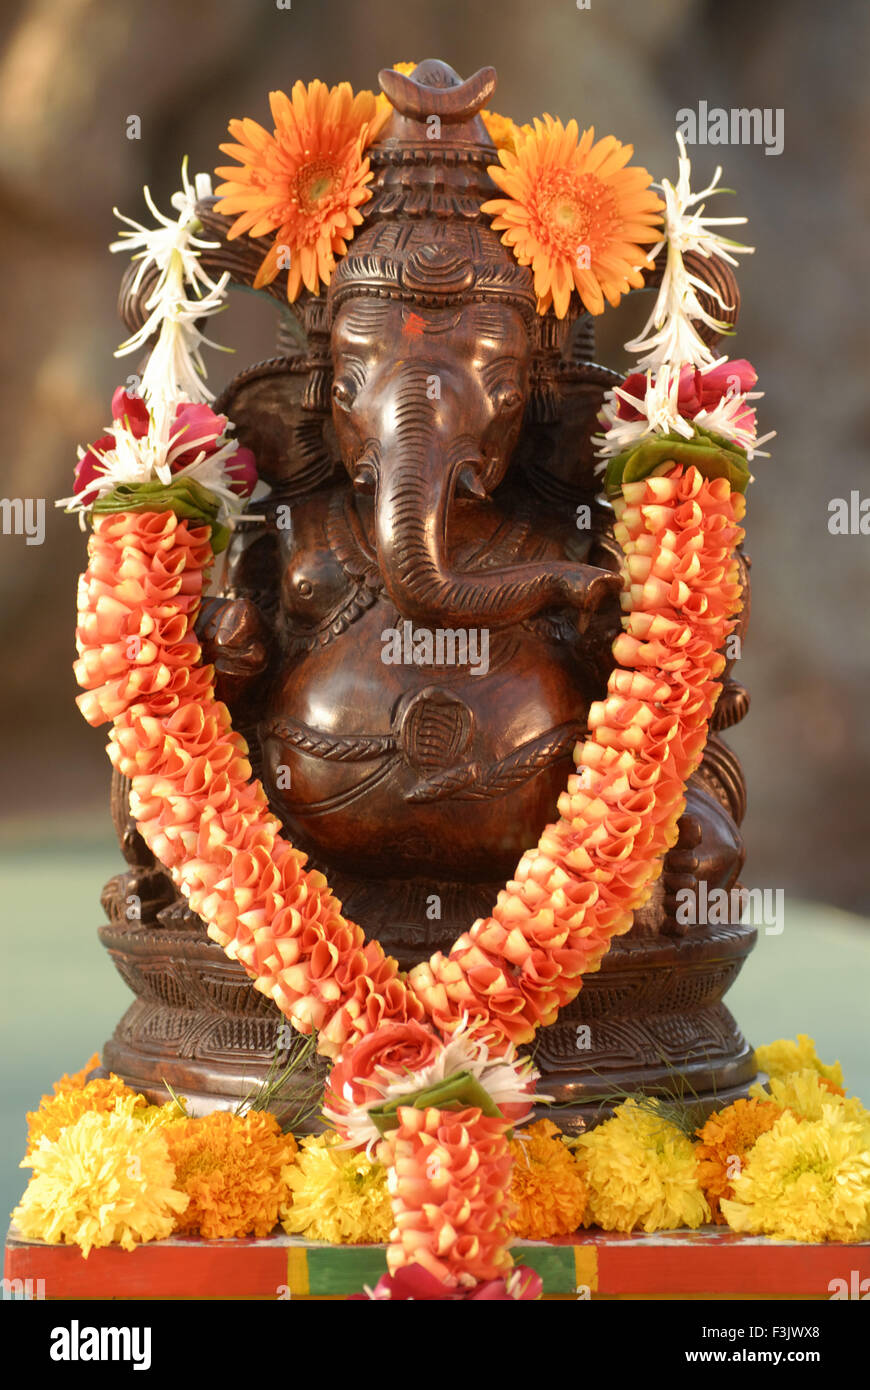 wood carved Idol Lord Ganesh painted Copper metal garlanded flowers marigold elephant headed God Ganapati Mumbai - Stock Image